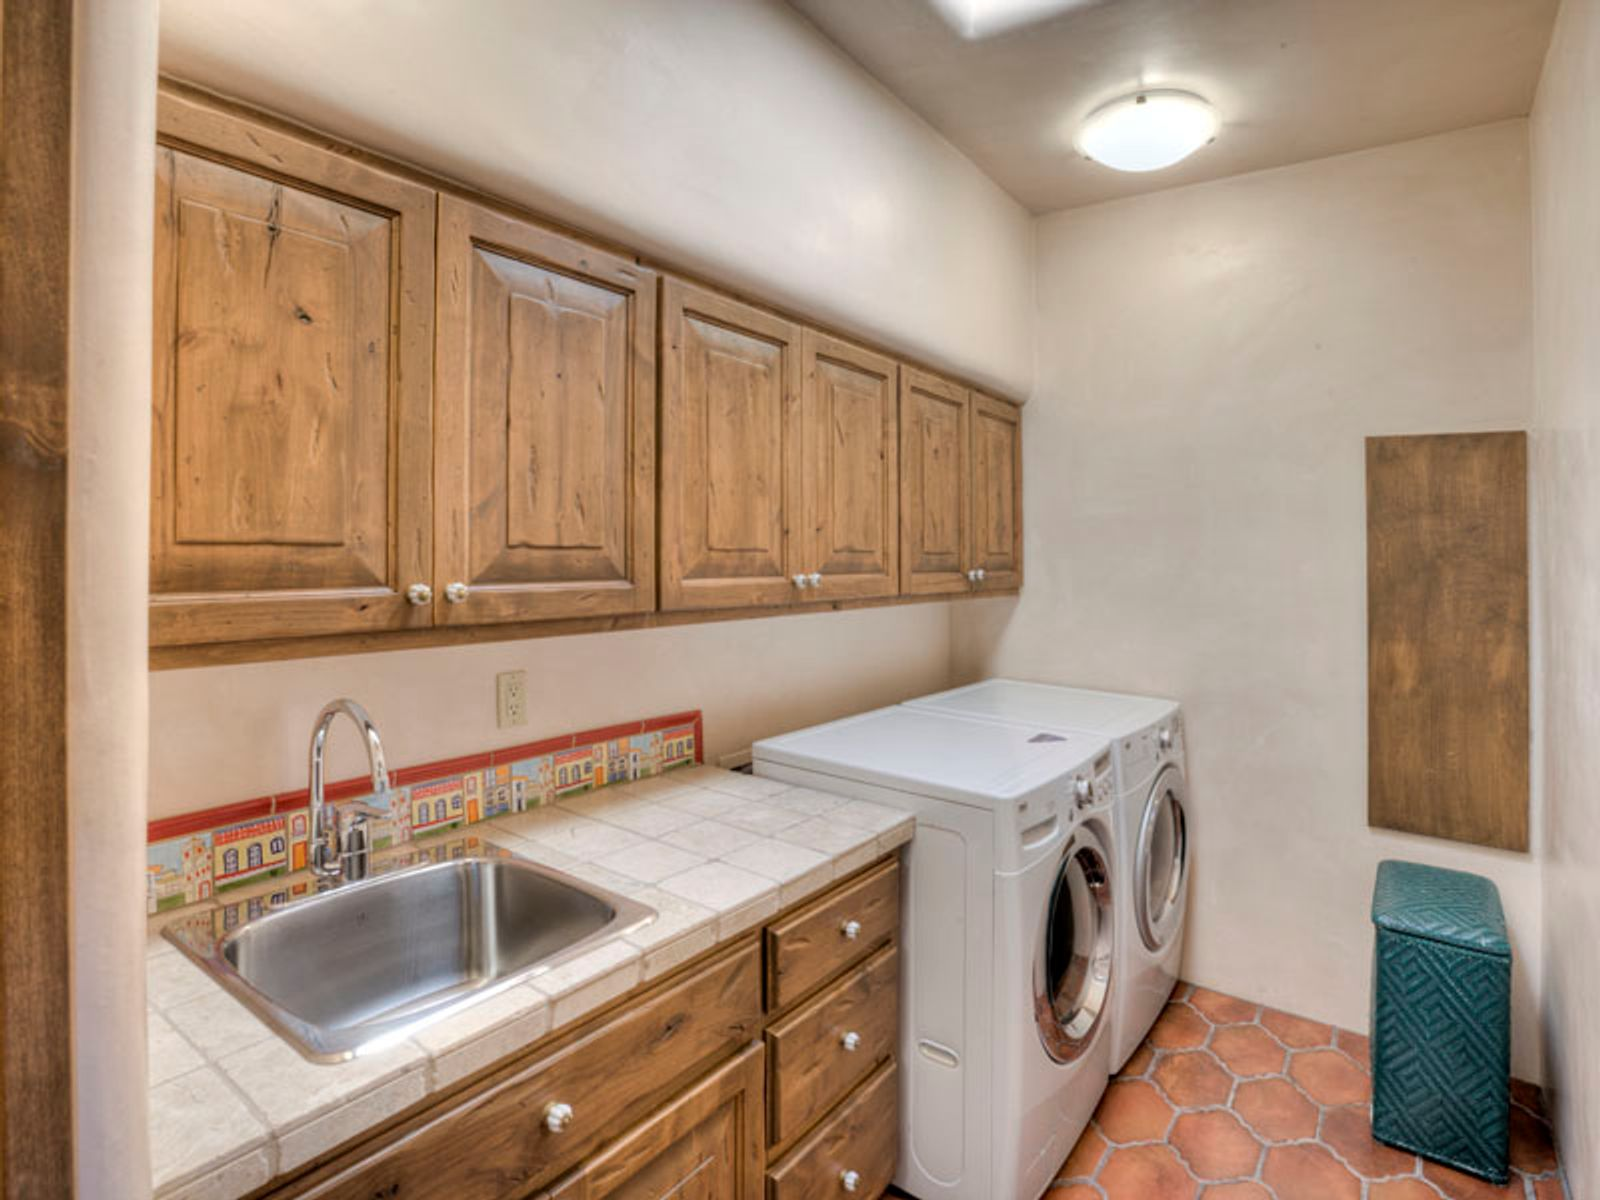 Laundry rm boasts plentiful cabinets, drawers